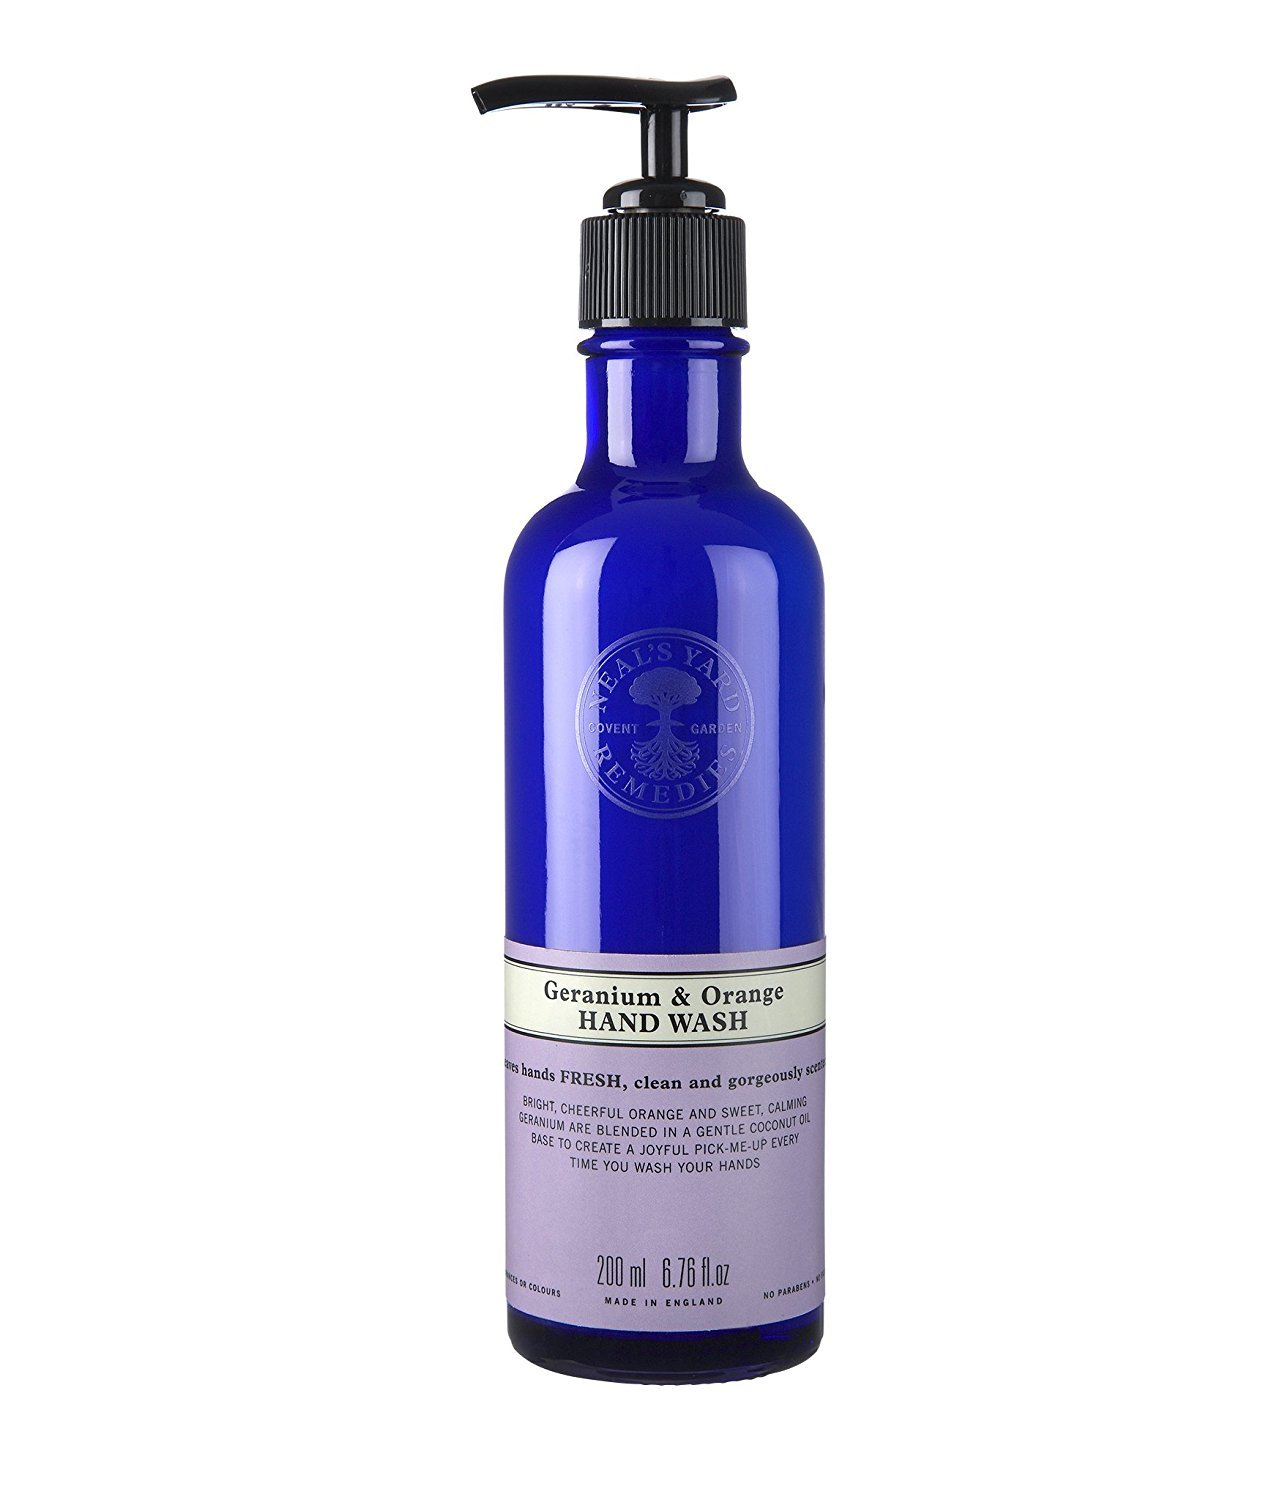 Neal's Yard Geranium and Orange Hand Wash 200ml by Neal's Yard Neal' s Yard PLU90185